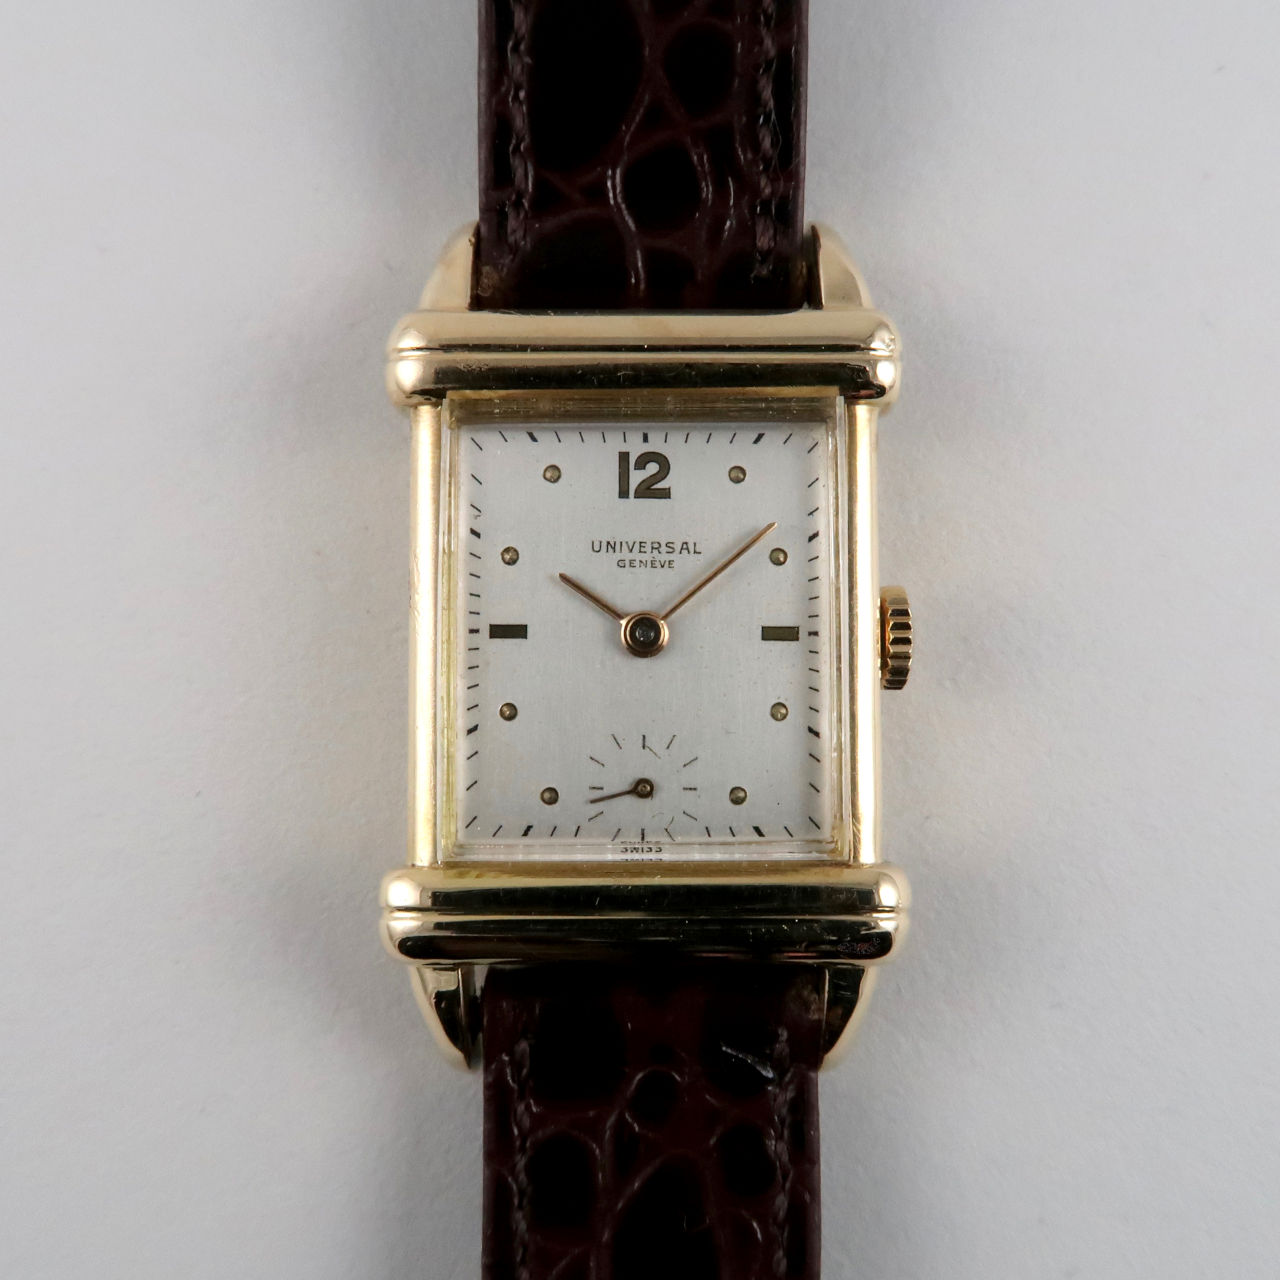 Universal Ref. 18507 18ct gold vintage wristwatch, hallmarked 1952